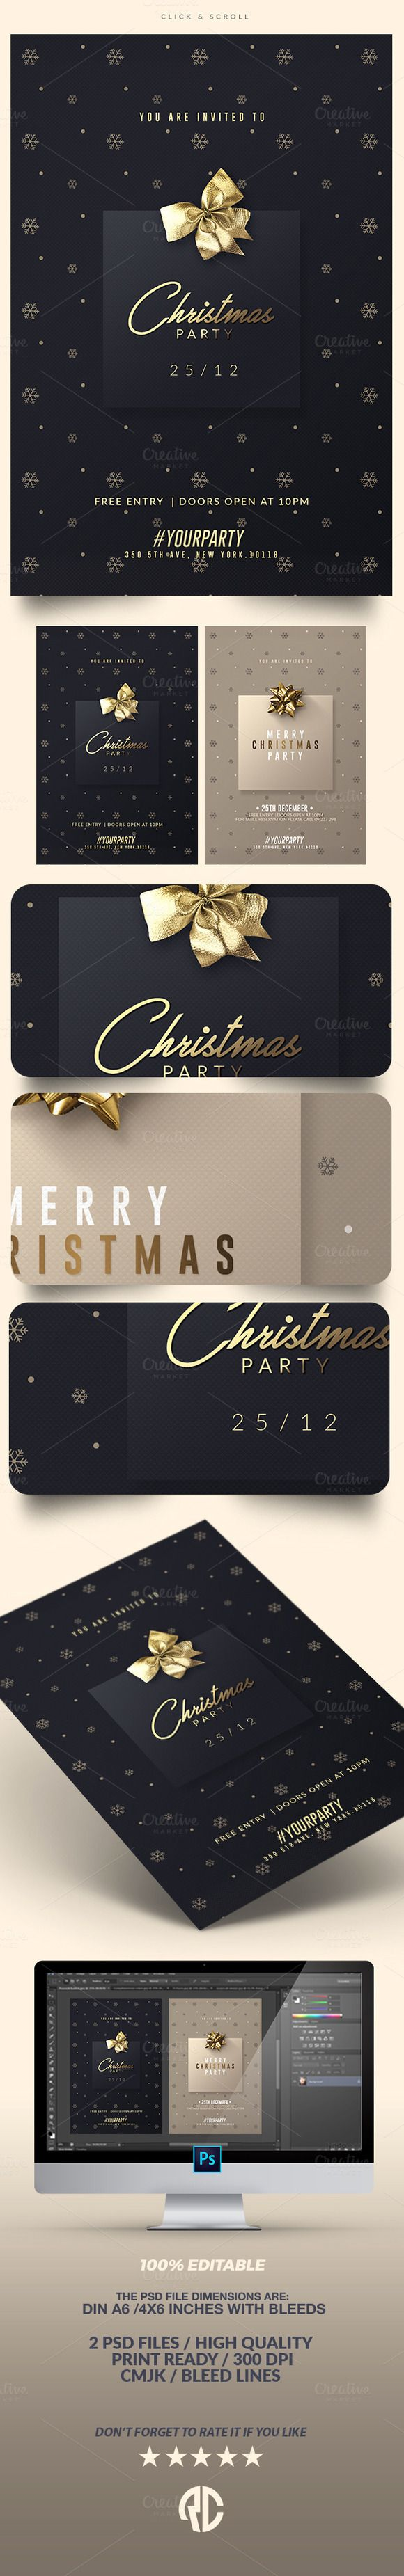 Need new Invitation Templates? Check out 2 Classy Christmas | Psd Invitations by @romecreation on @CreativeMarket https://crmrkt.com/eGo1j   #flyer #templates #christmas #cards #invites #invitation #christmas2016 #psd #romecreation